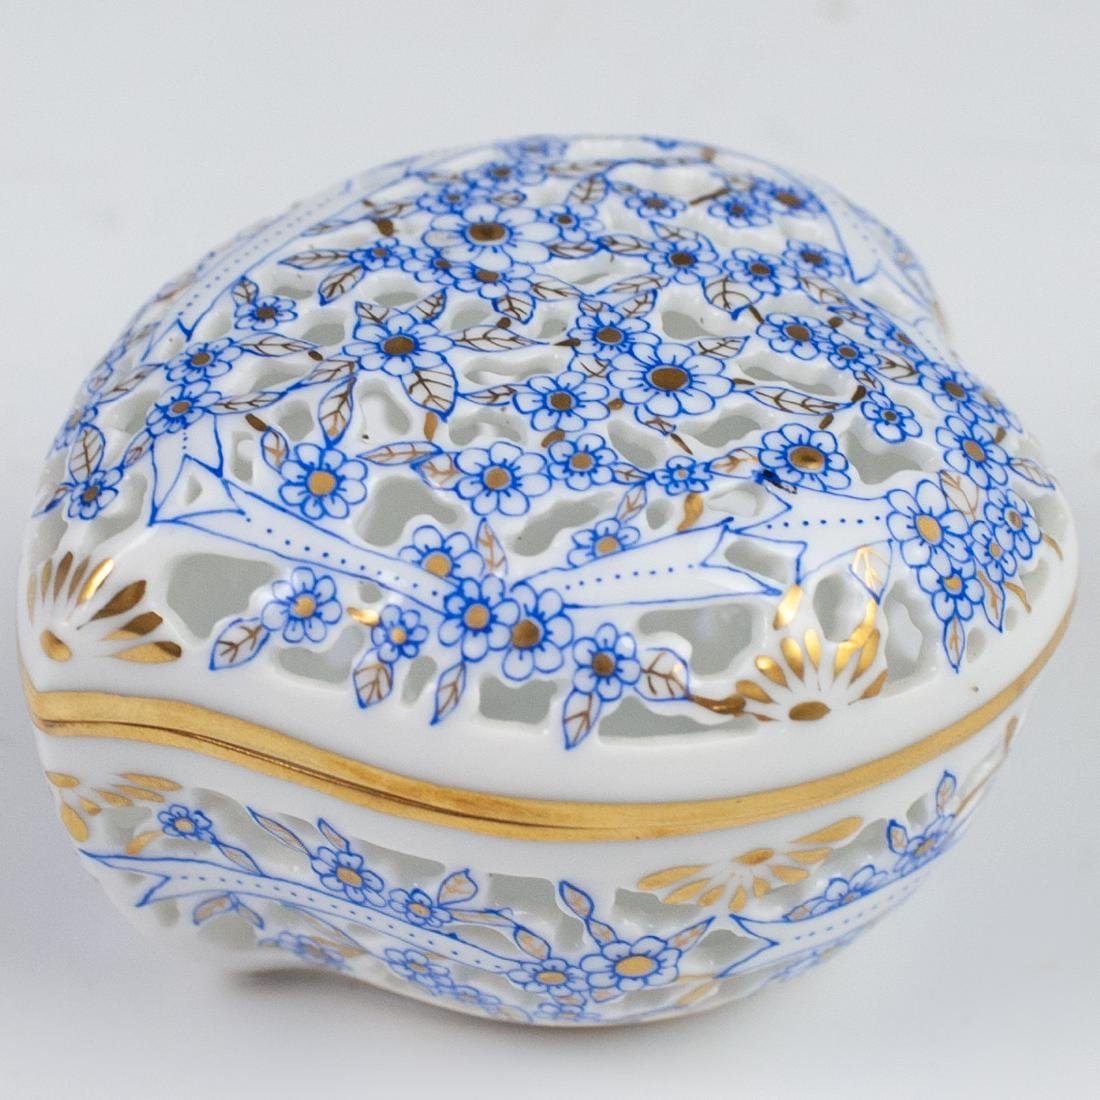 Herend Porcelain Reticulated Bonbonniere